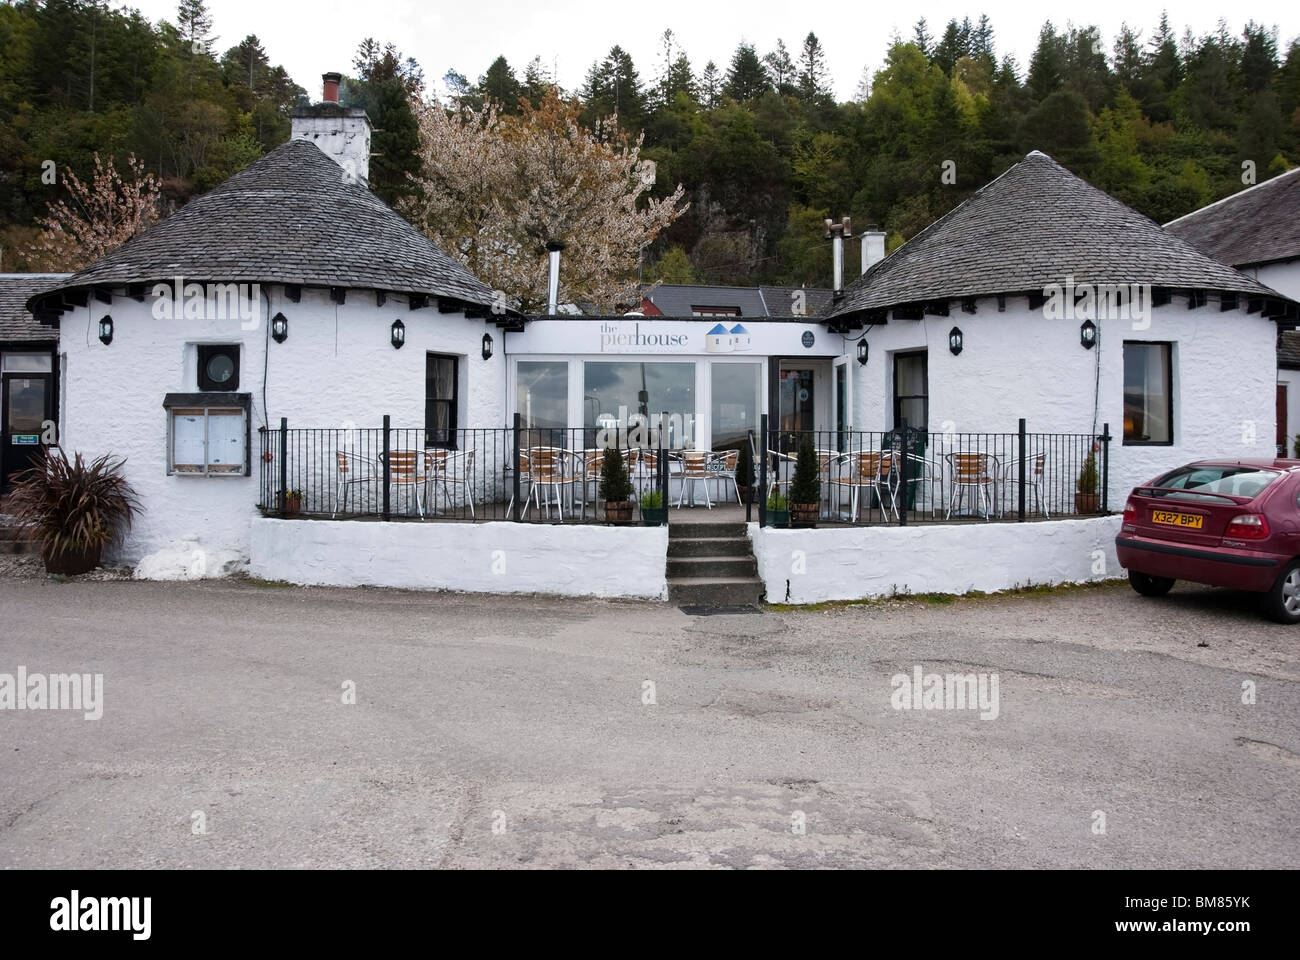 The pierhouse 4 star small country hotel restaurant port for Small country hotels